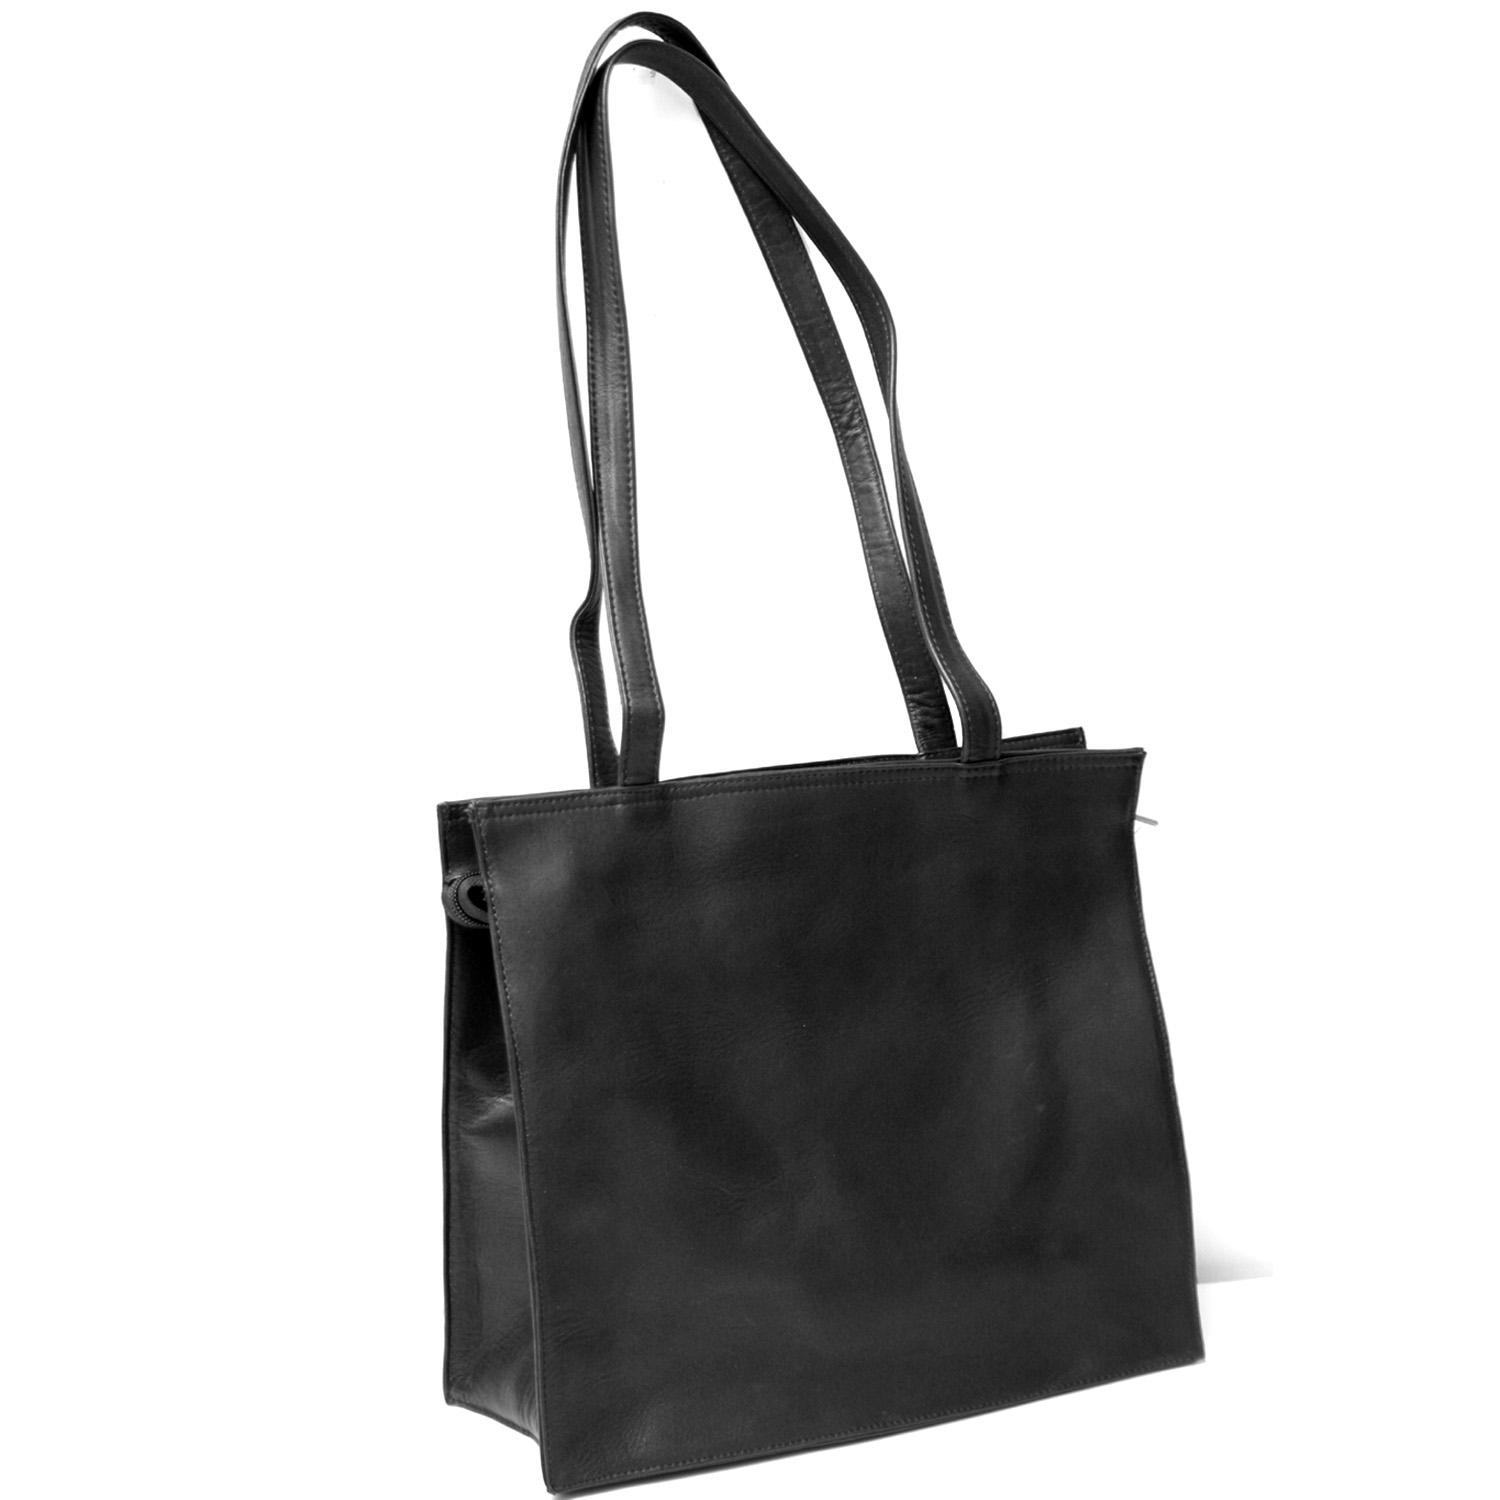 Royce Leather Women's Vaquetta All-purpose Tote Bag